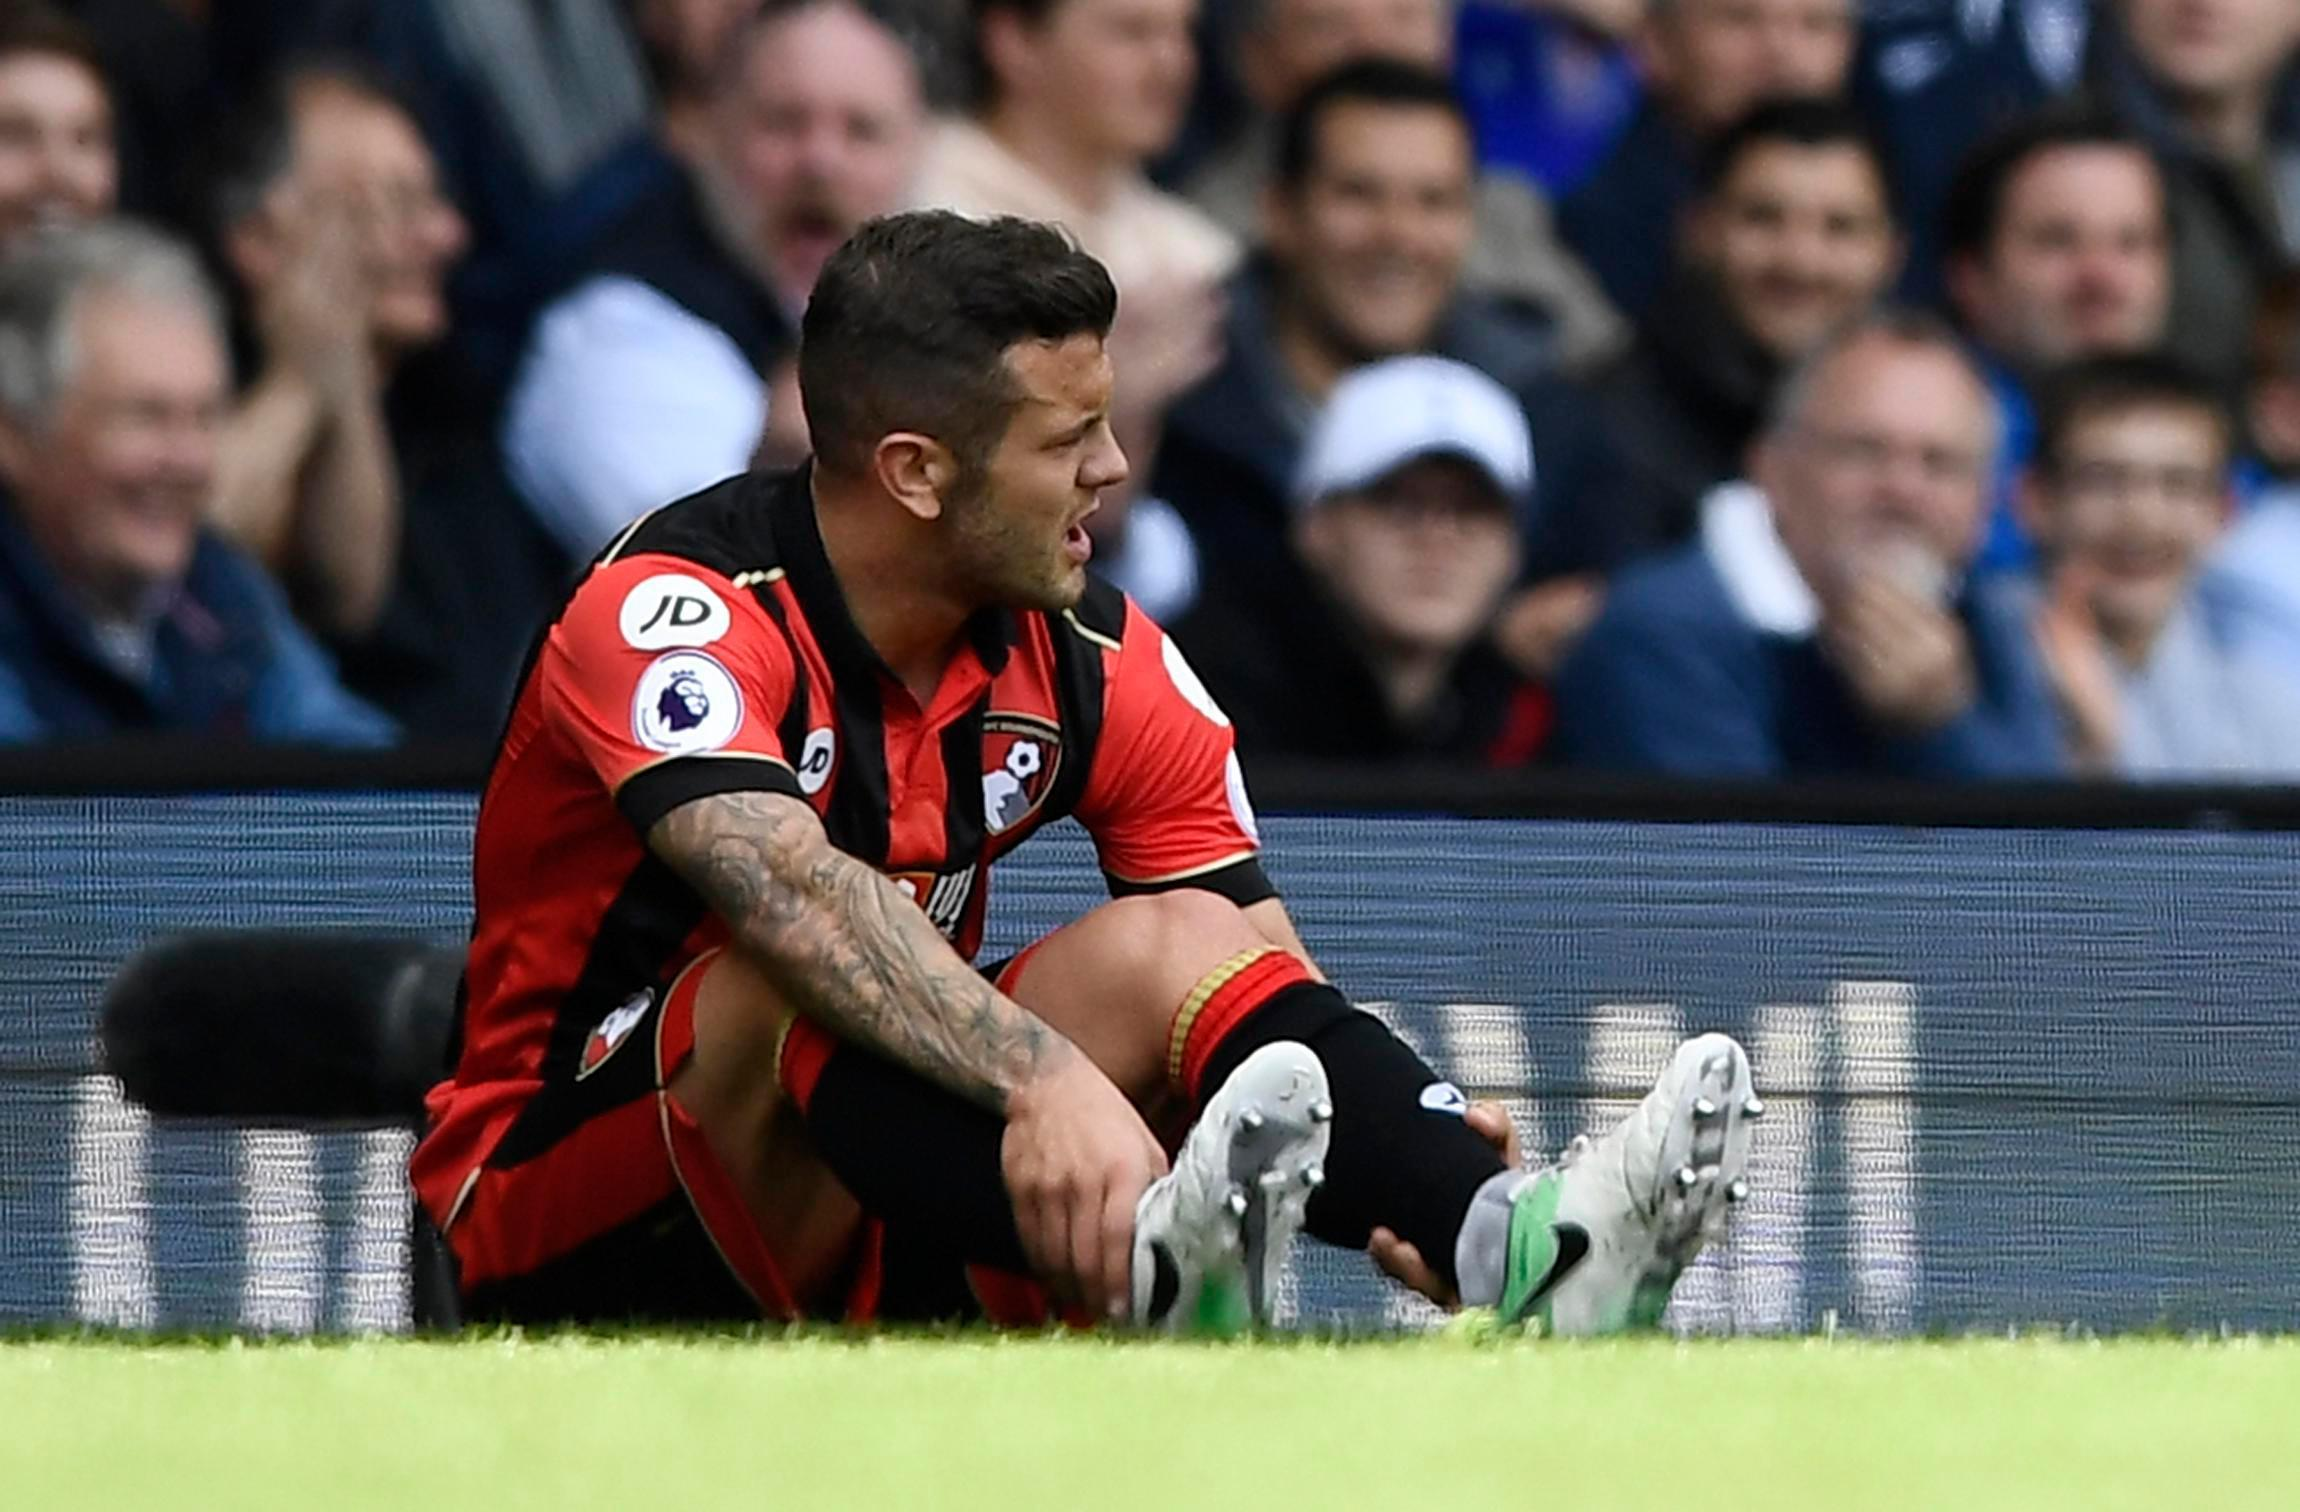 Jack Wilshere is currently recovering from a broken leg